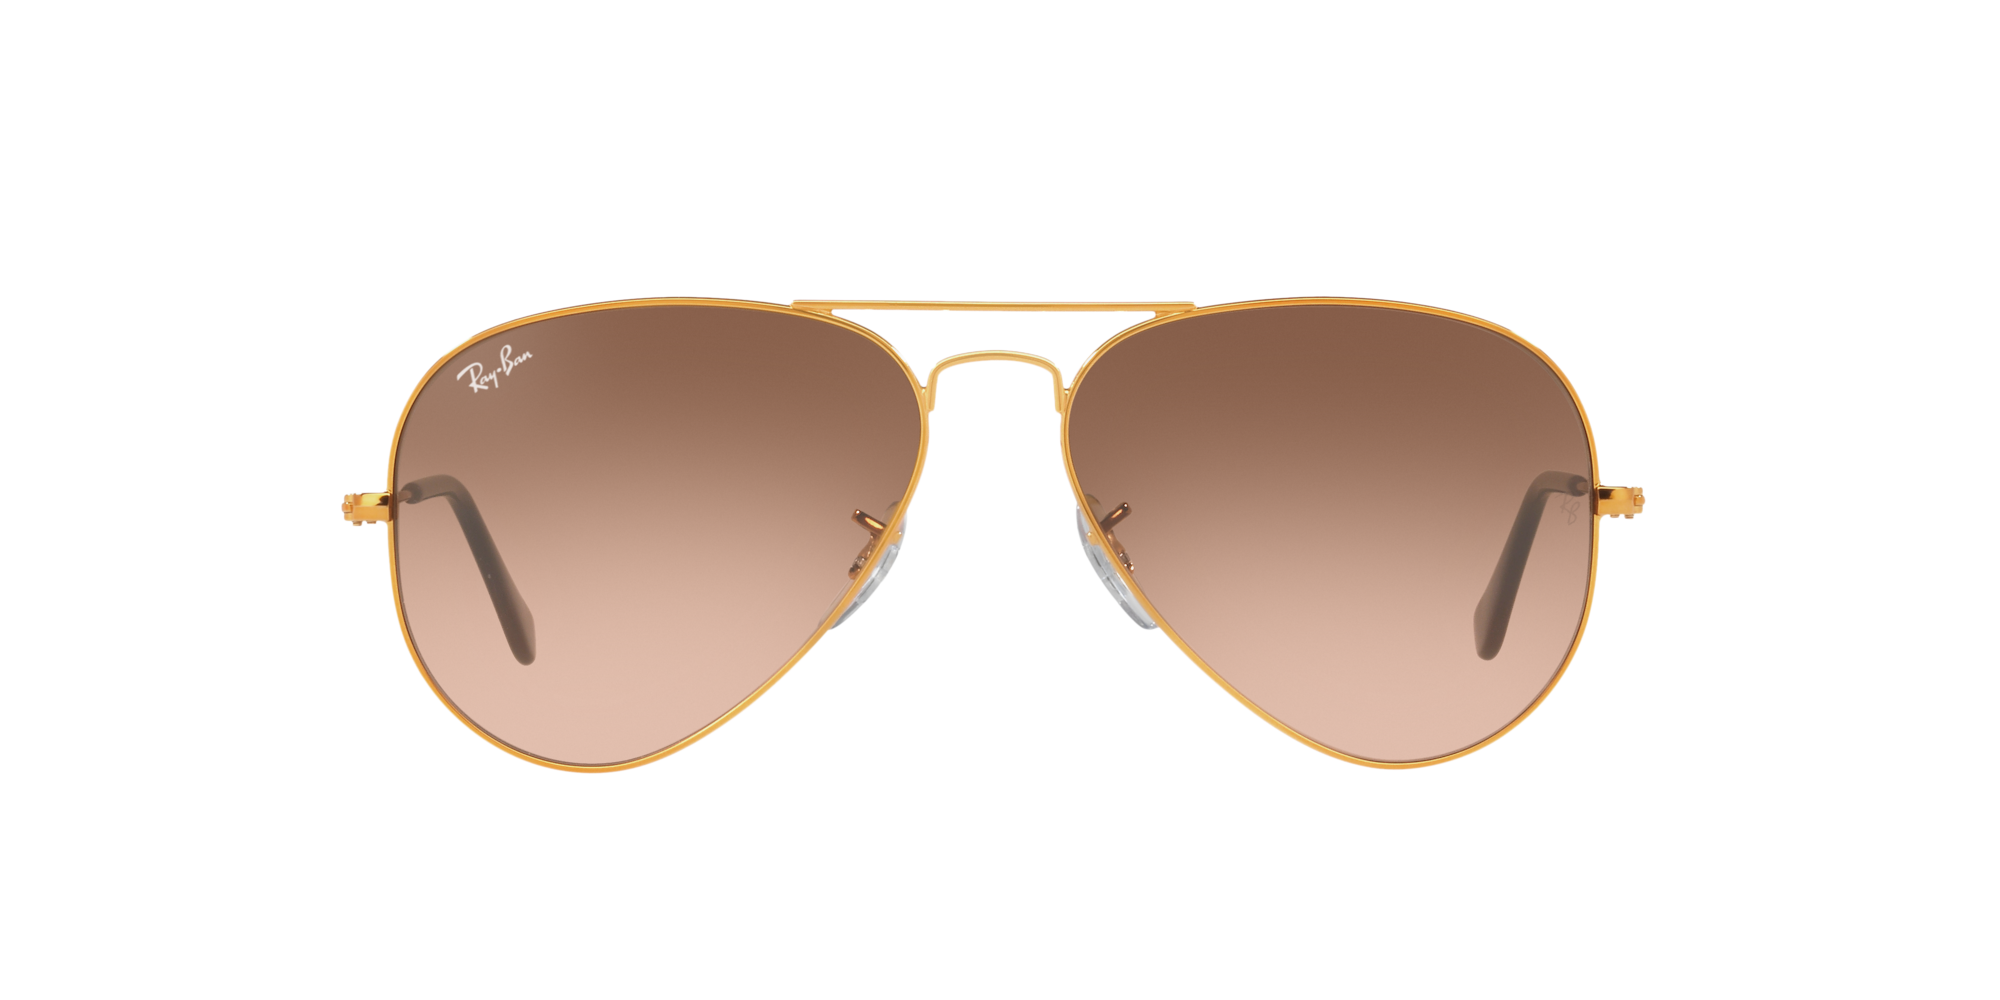 RAY-BAN AVIATOR CLASSIC RB 3025 9001A5-360